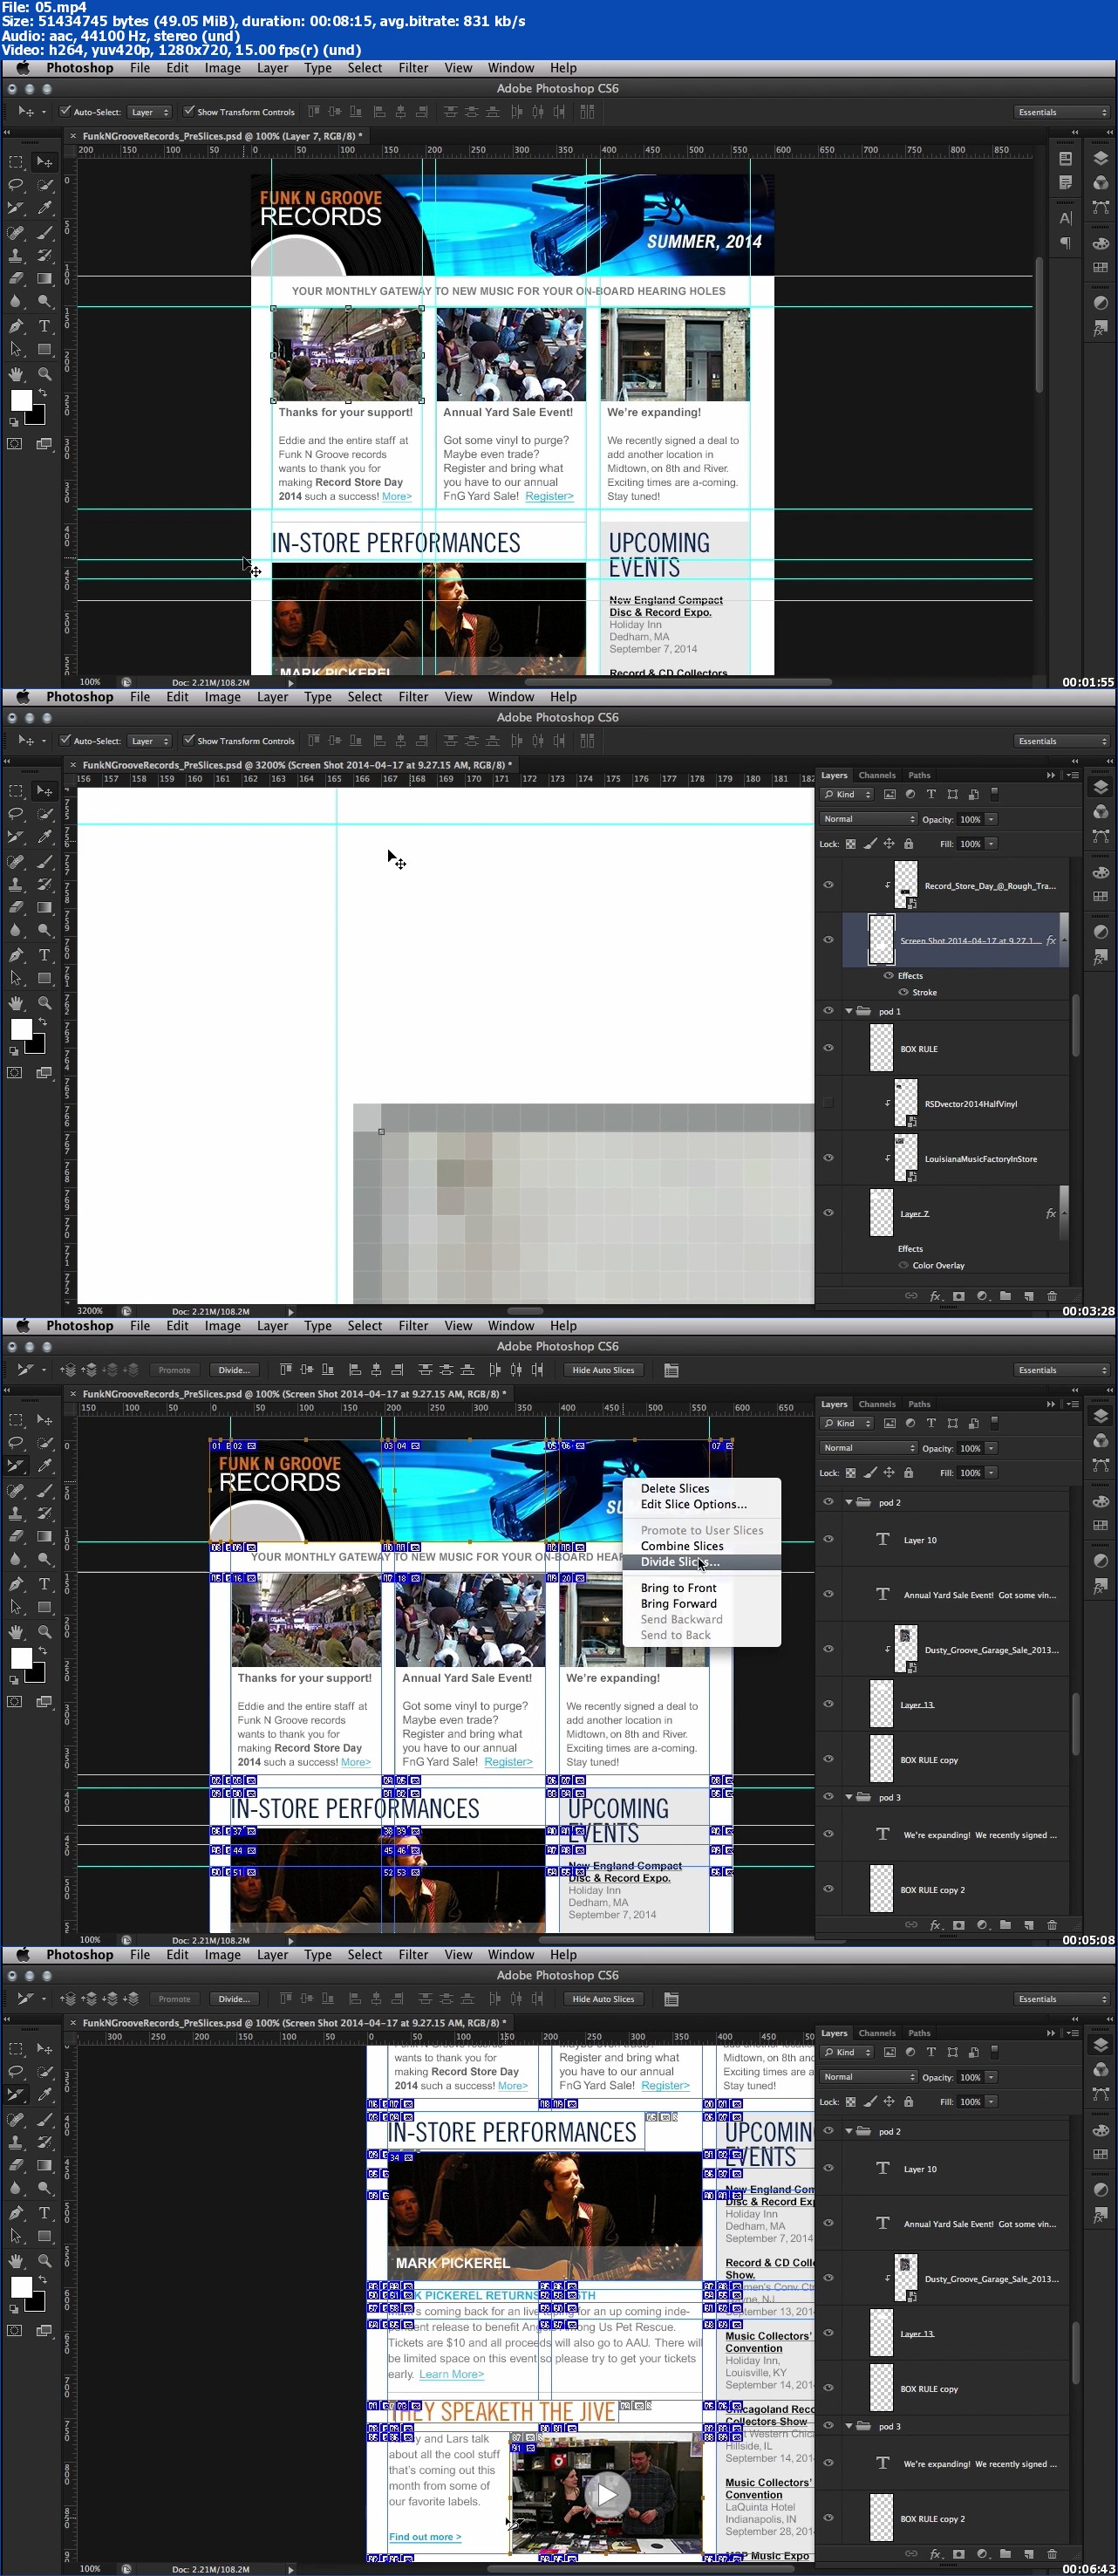 Dixxl Tuxxs - Creating an Email Newsletter in Photoshop and Dreamweaver